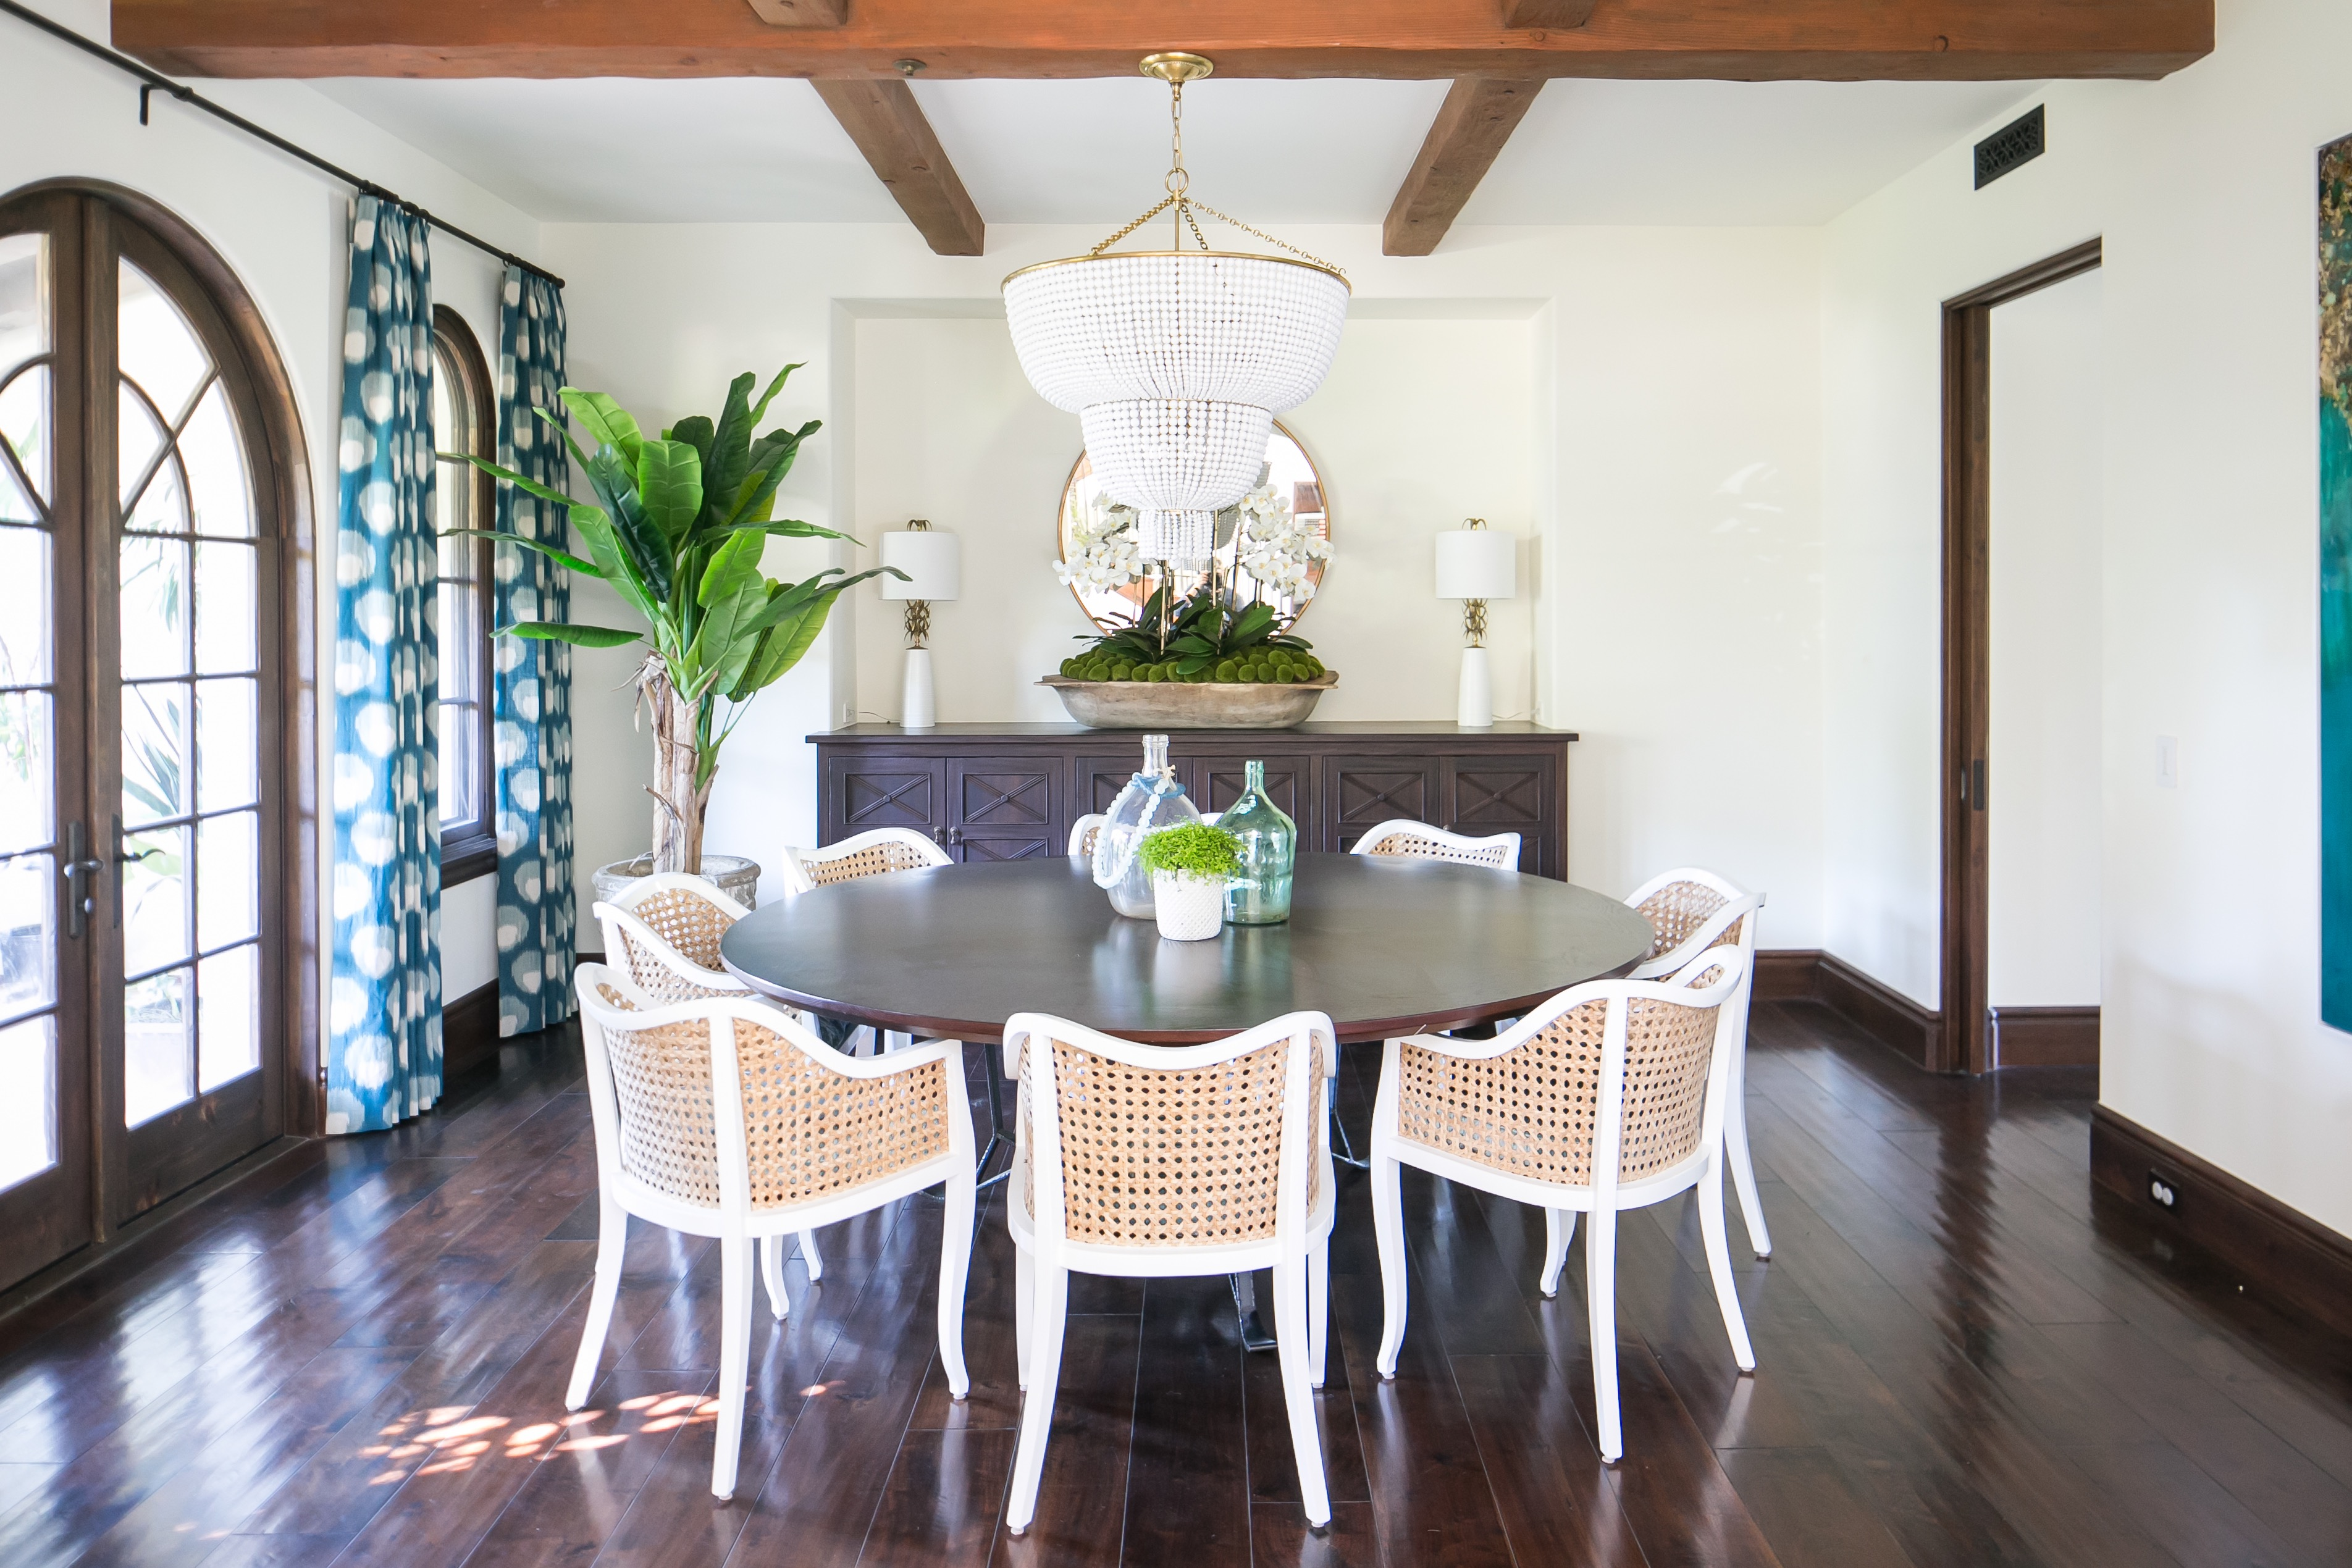 Tiered Chandelier For Formal Dining Room With Round Dining Table And White Chairs (Image 25 of 25)